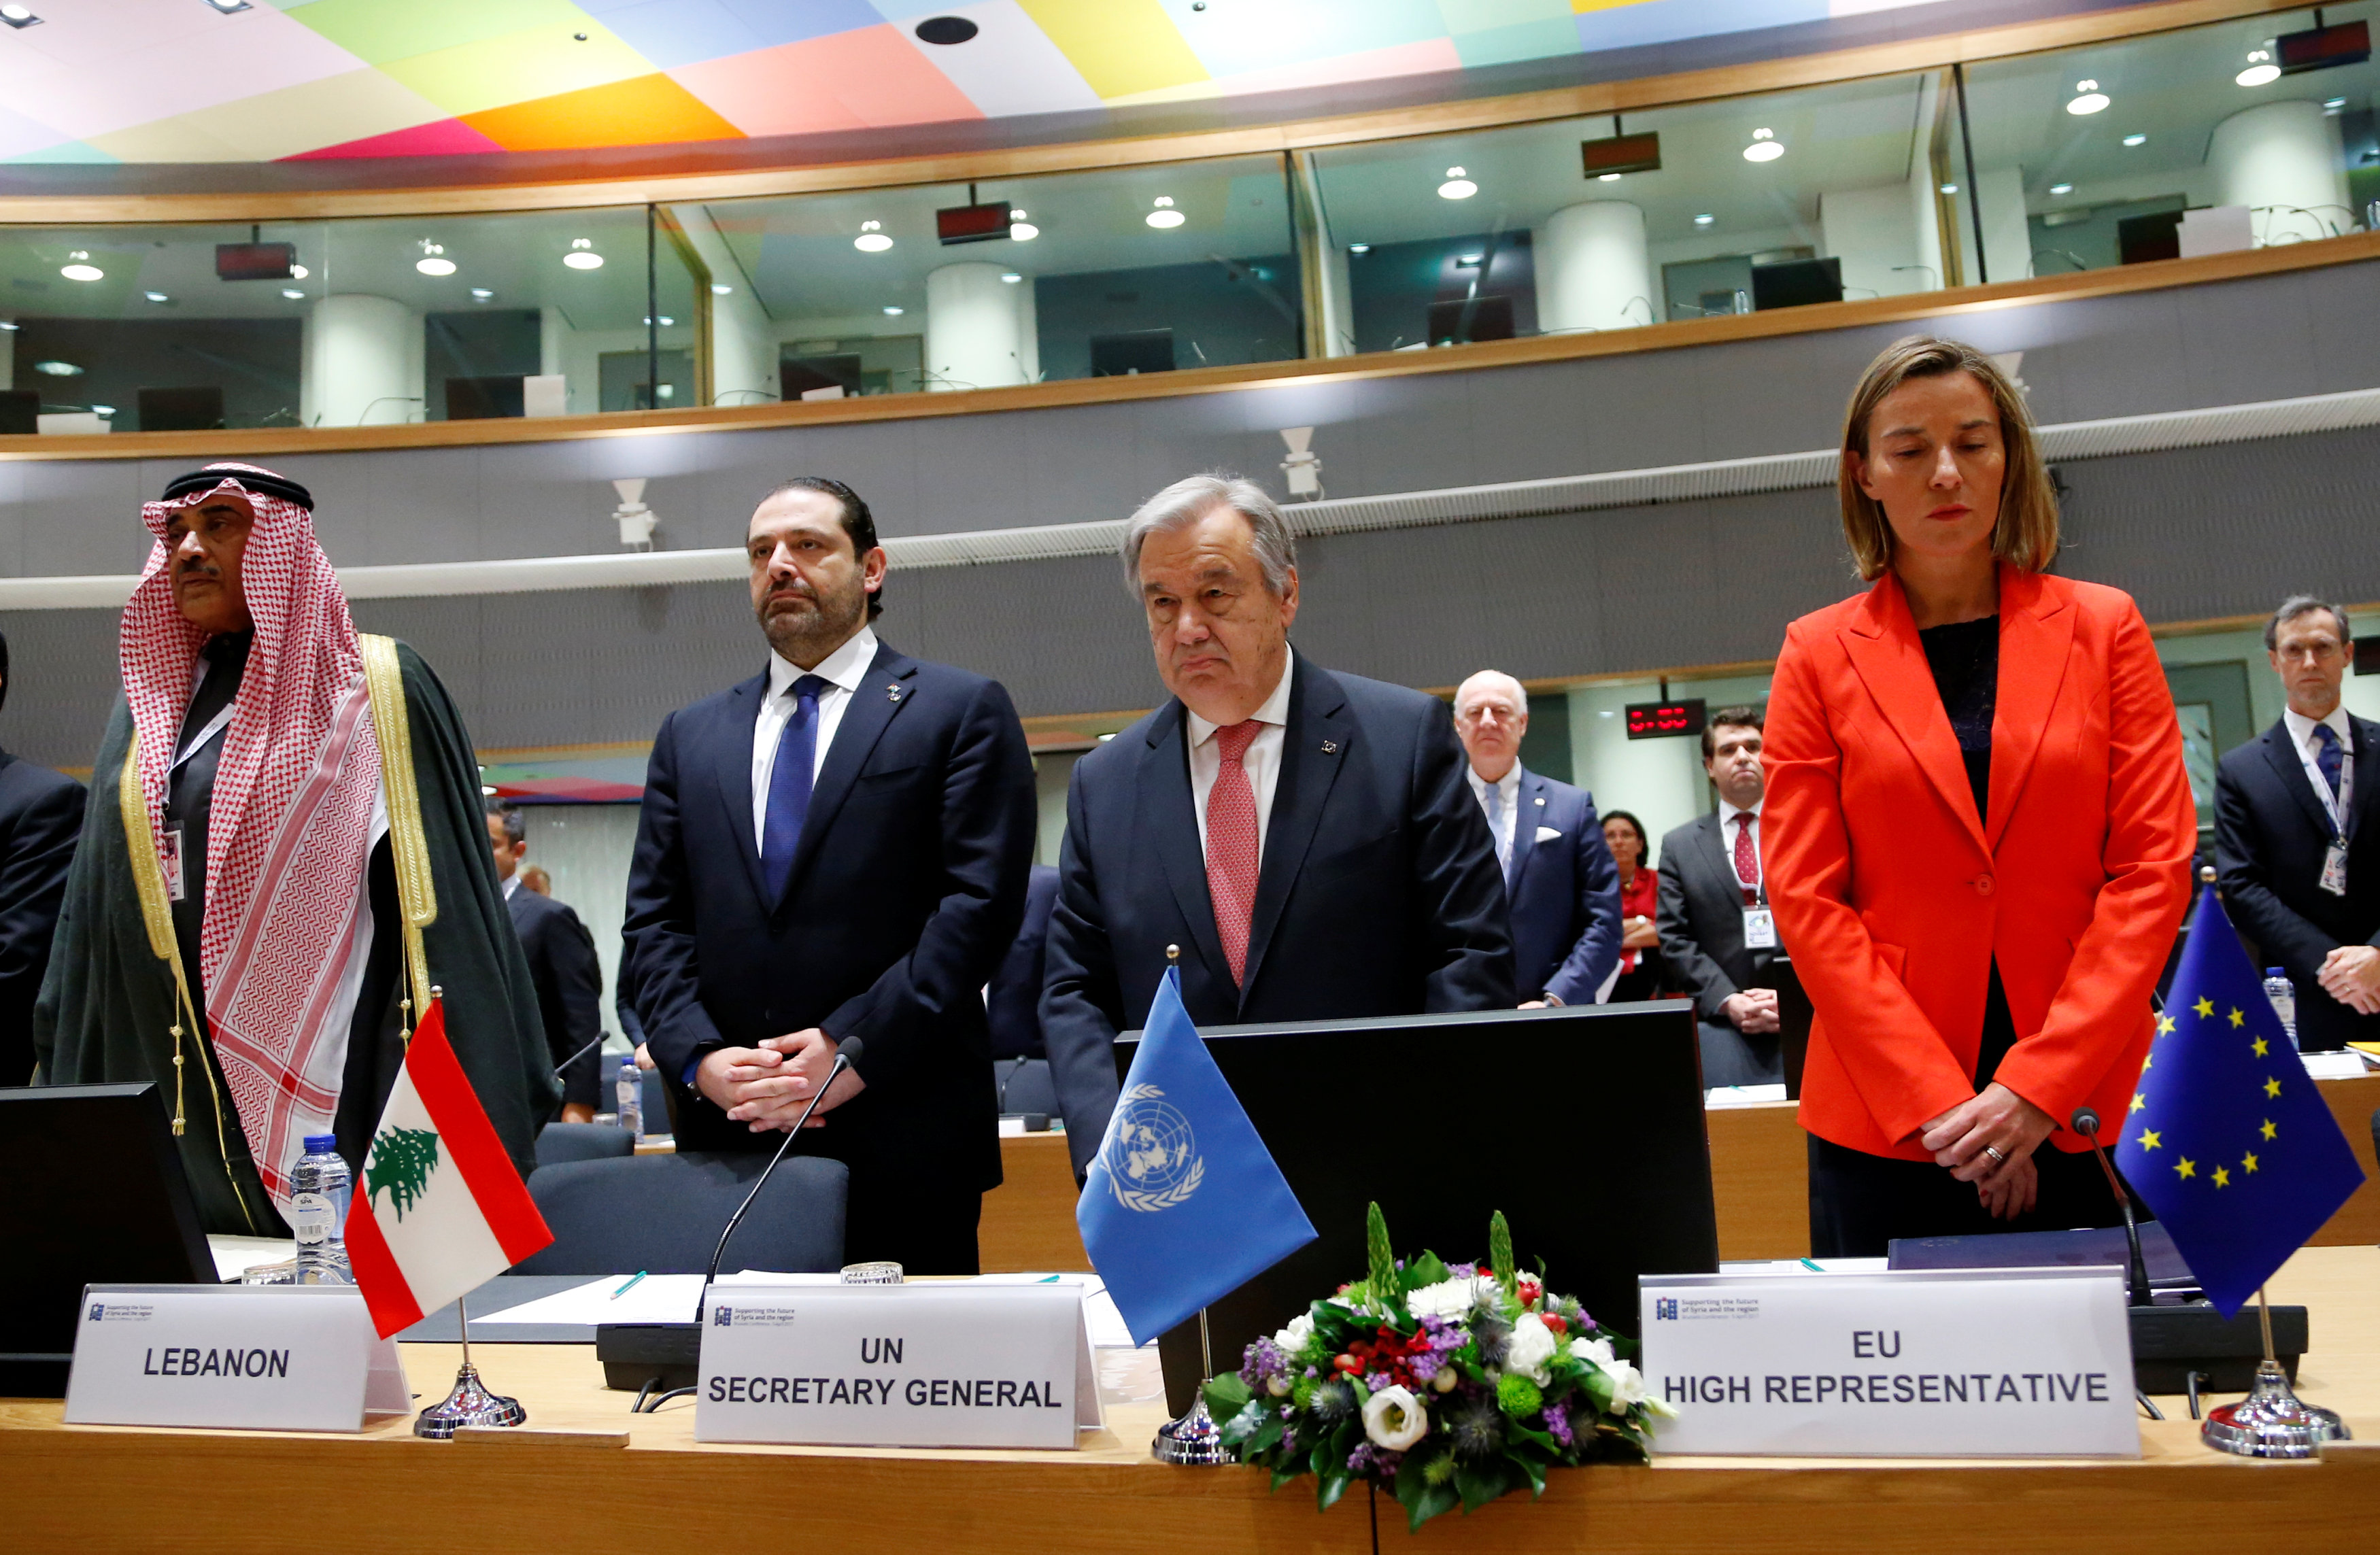 (L-R) Kuwait Foreign Minister Sabah Al Khalid Al Sabah, Lebanese Prime Minister Saad al-Hariri, United Nations Secretary General Antonio Guterres and European Union foreign policy chief Federica Mogherini observe a minute of silence in respect for the victims of suspected Syrian government chemical attack during an international conference on the future of Syria and the region, in Brussels, Belgium on April 5, 2017. (REUTERS/Francois Lenoir)